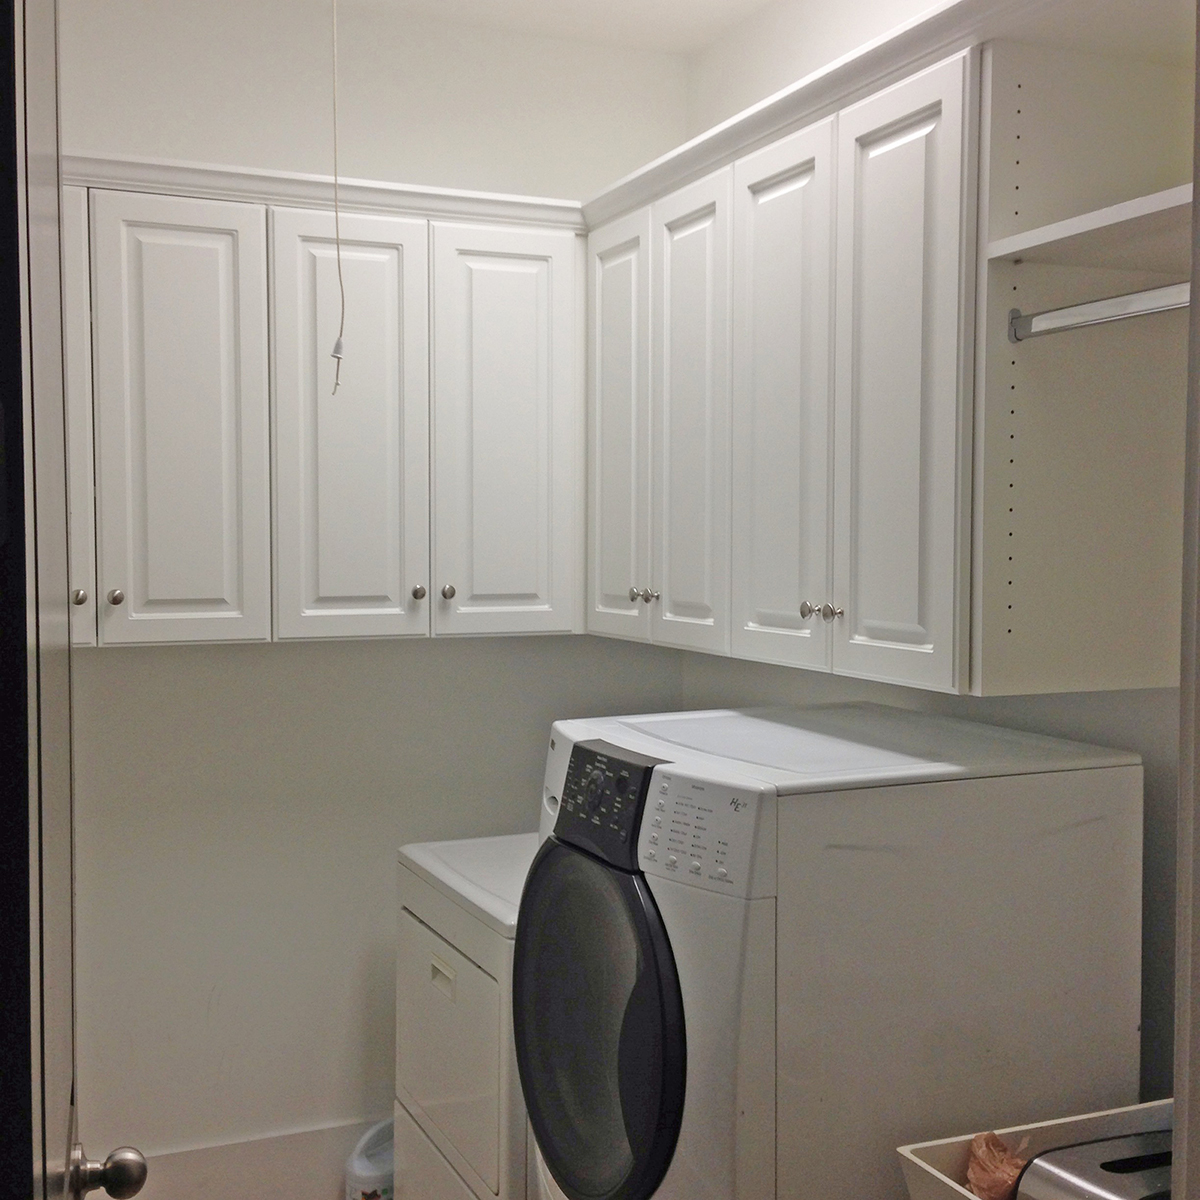 Fill Tiny Room with Clean White Laundry Room Cabinets and Modern Washing Machines